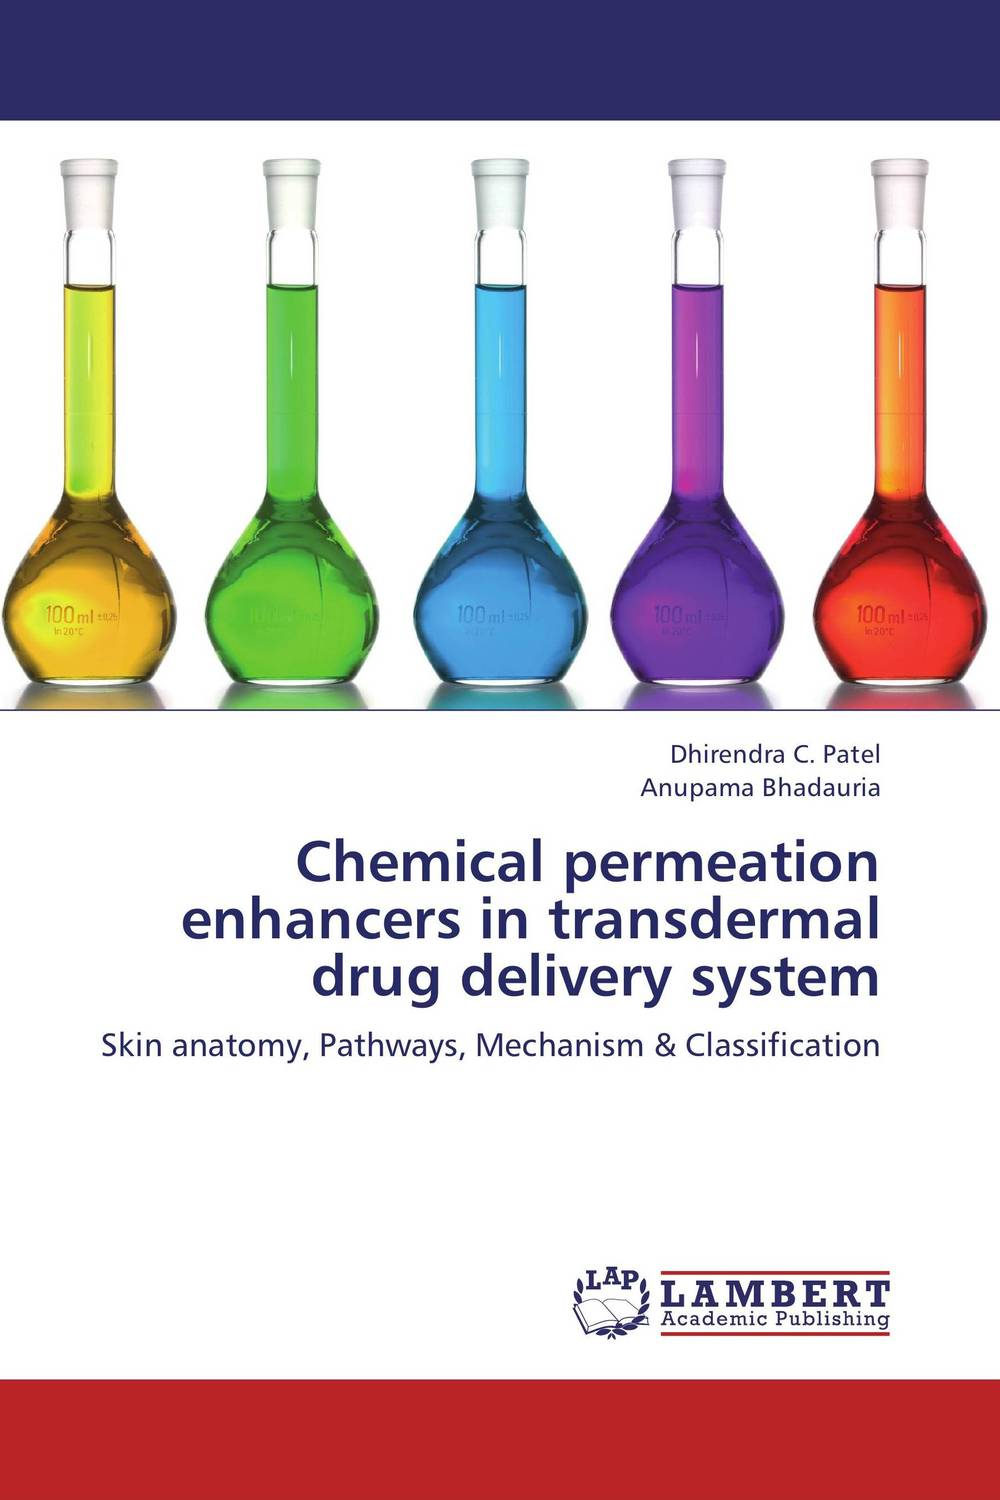 Chemical permeation enhancers in transdermal drug delivery system a review on osmotic drug delivery system